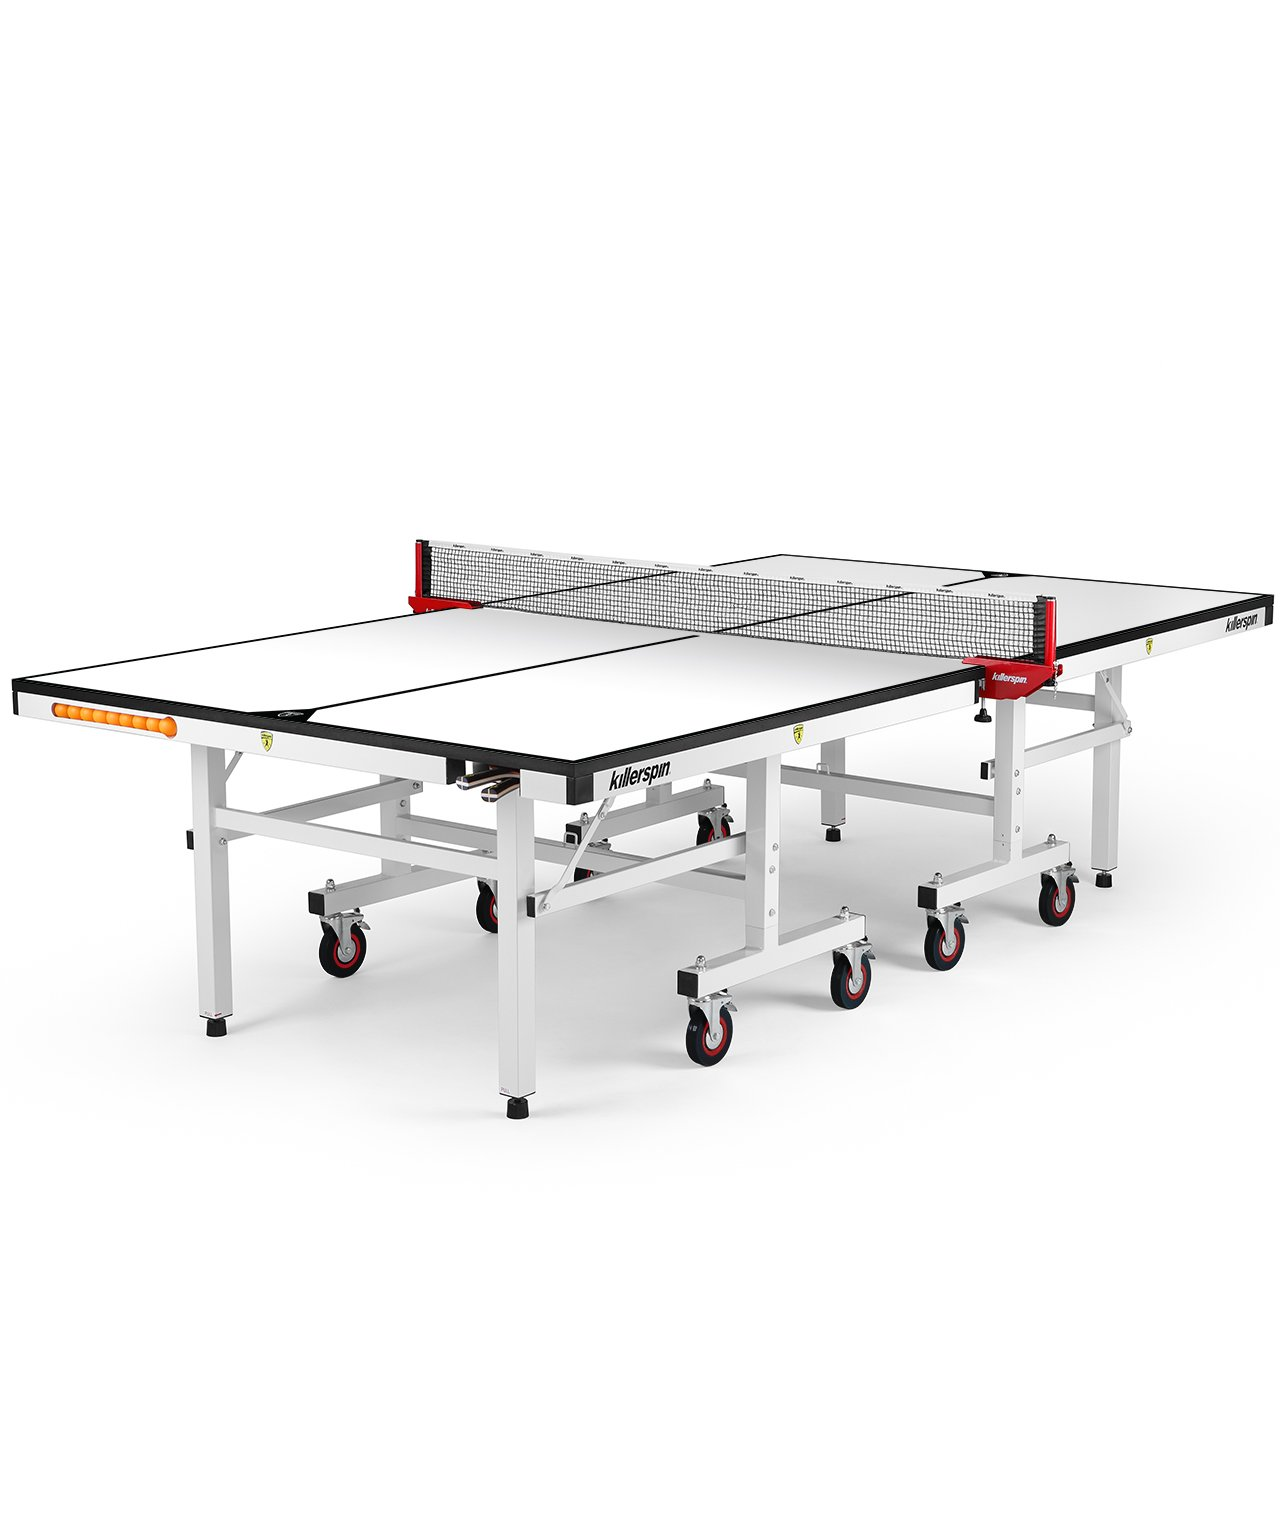 killerspin-ping-pong-table-myt10-biancopure-white-02